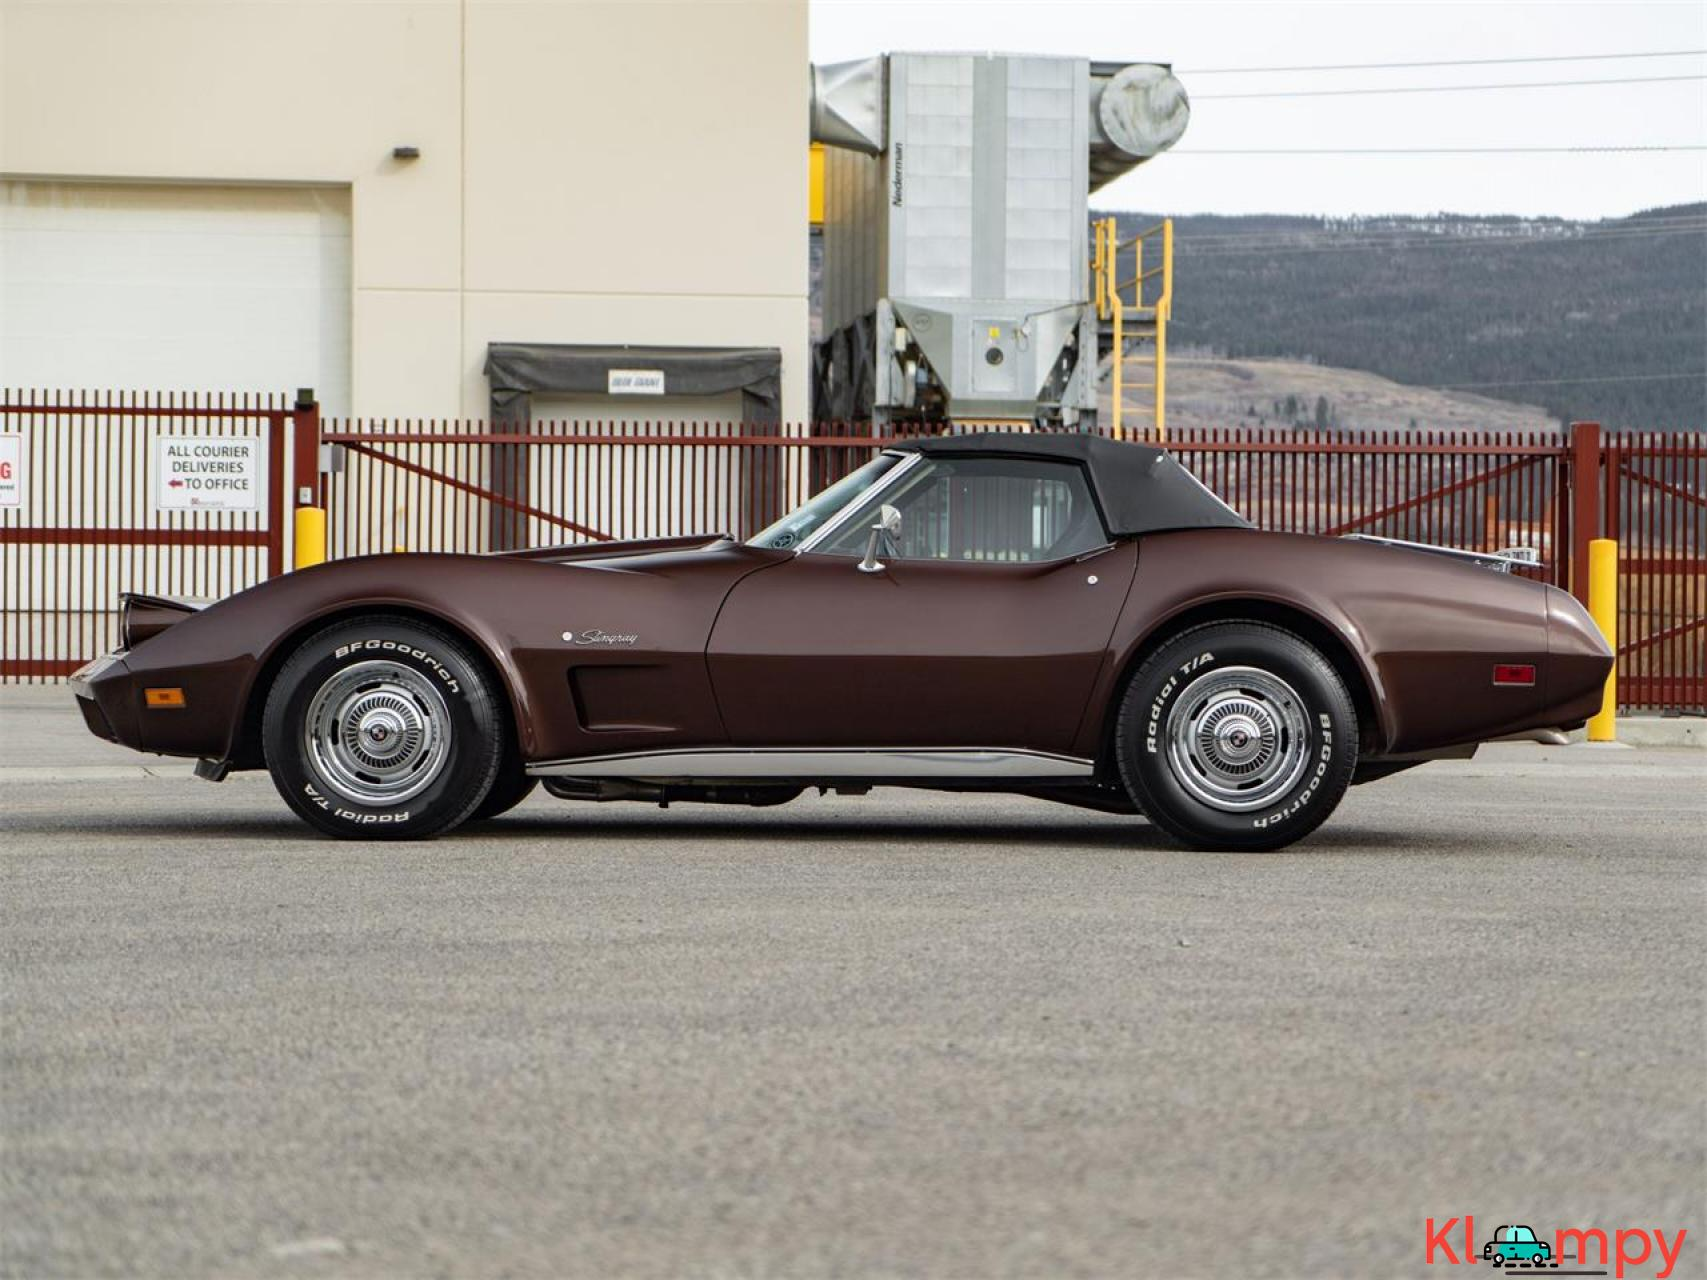 1974 Chevrolet Corvette Pheonix 350ci Crate Engine - 16/20